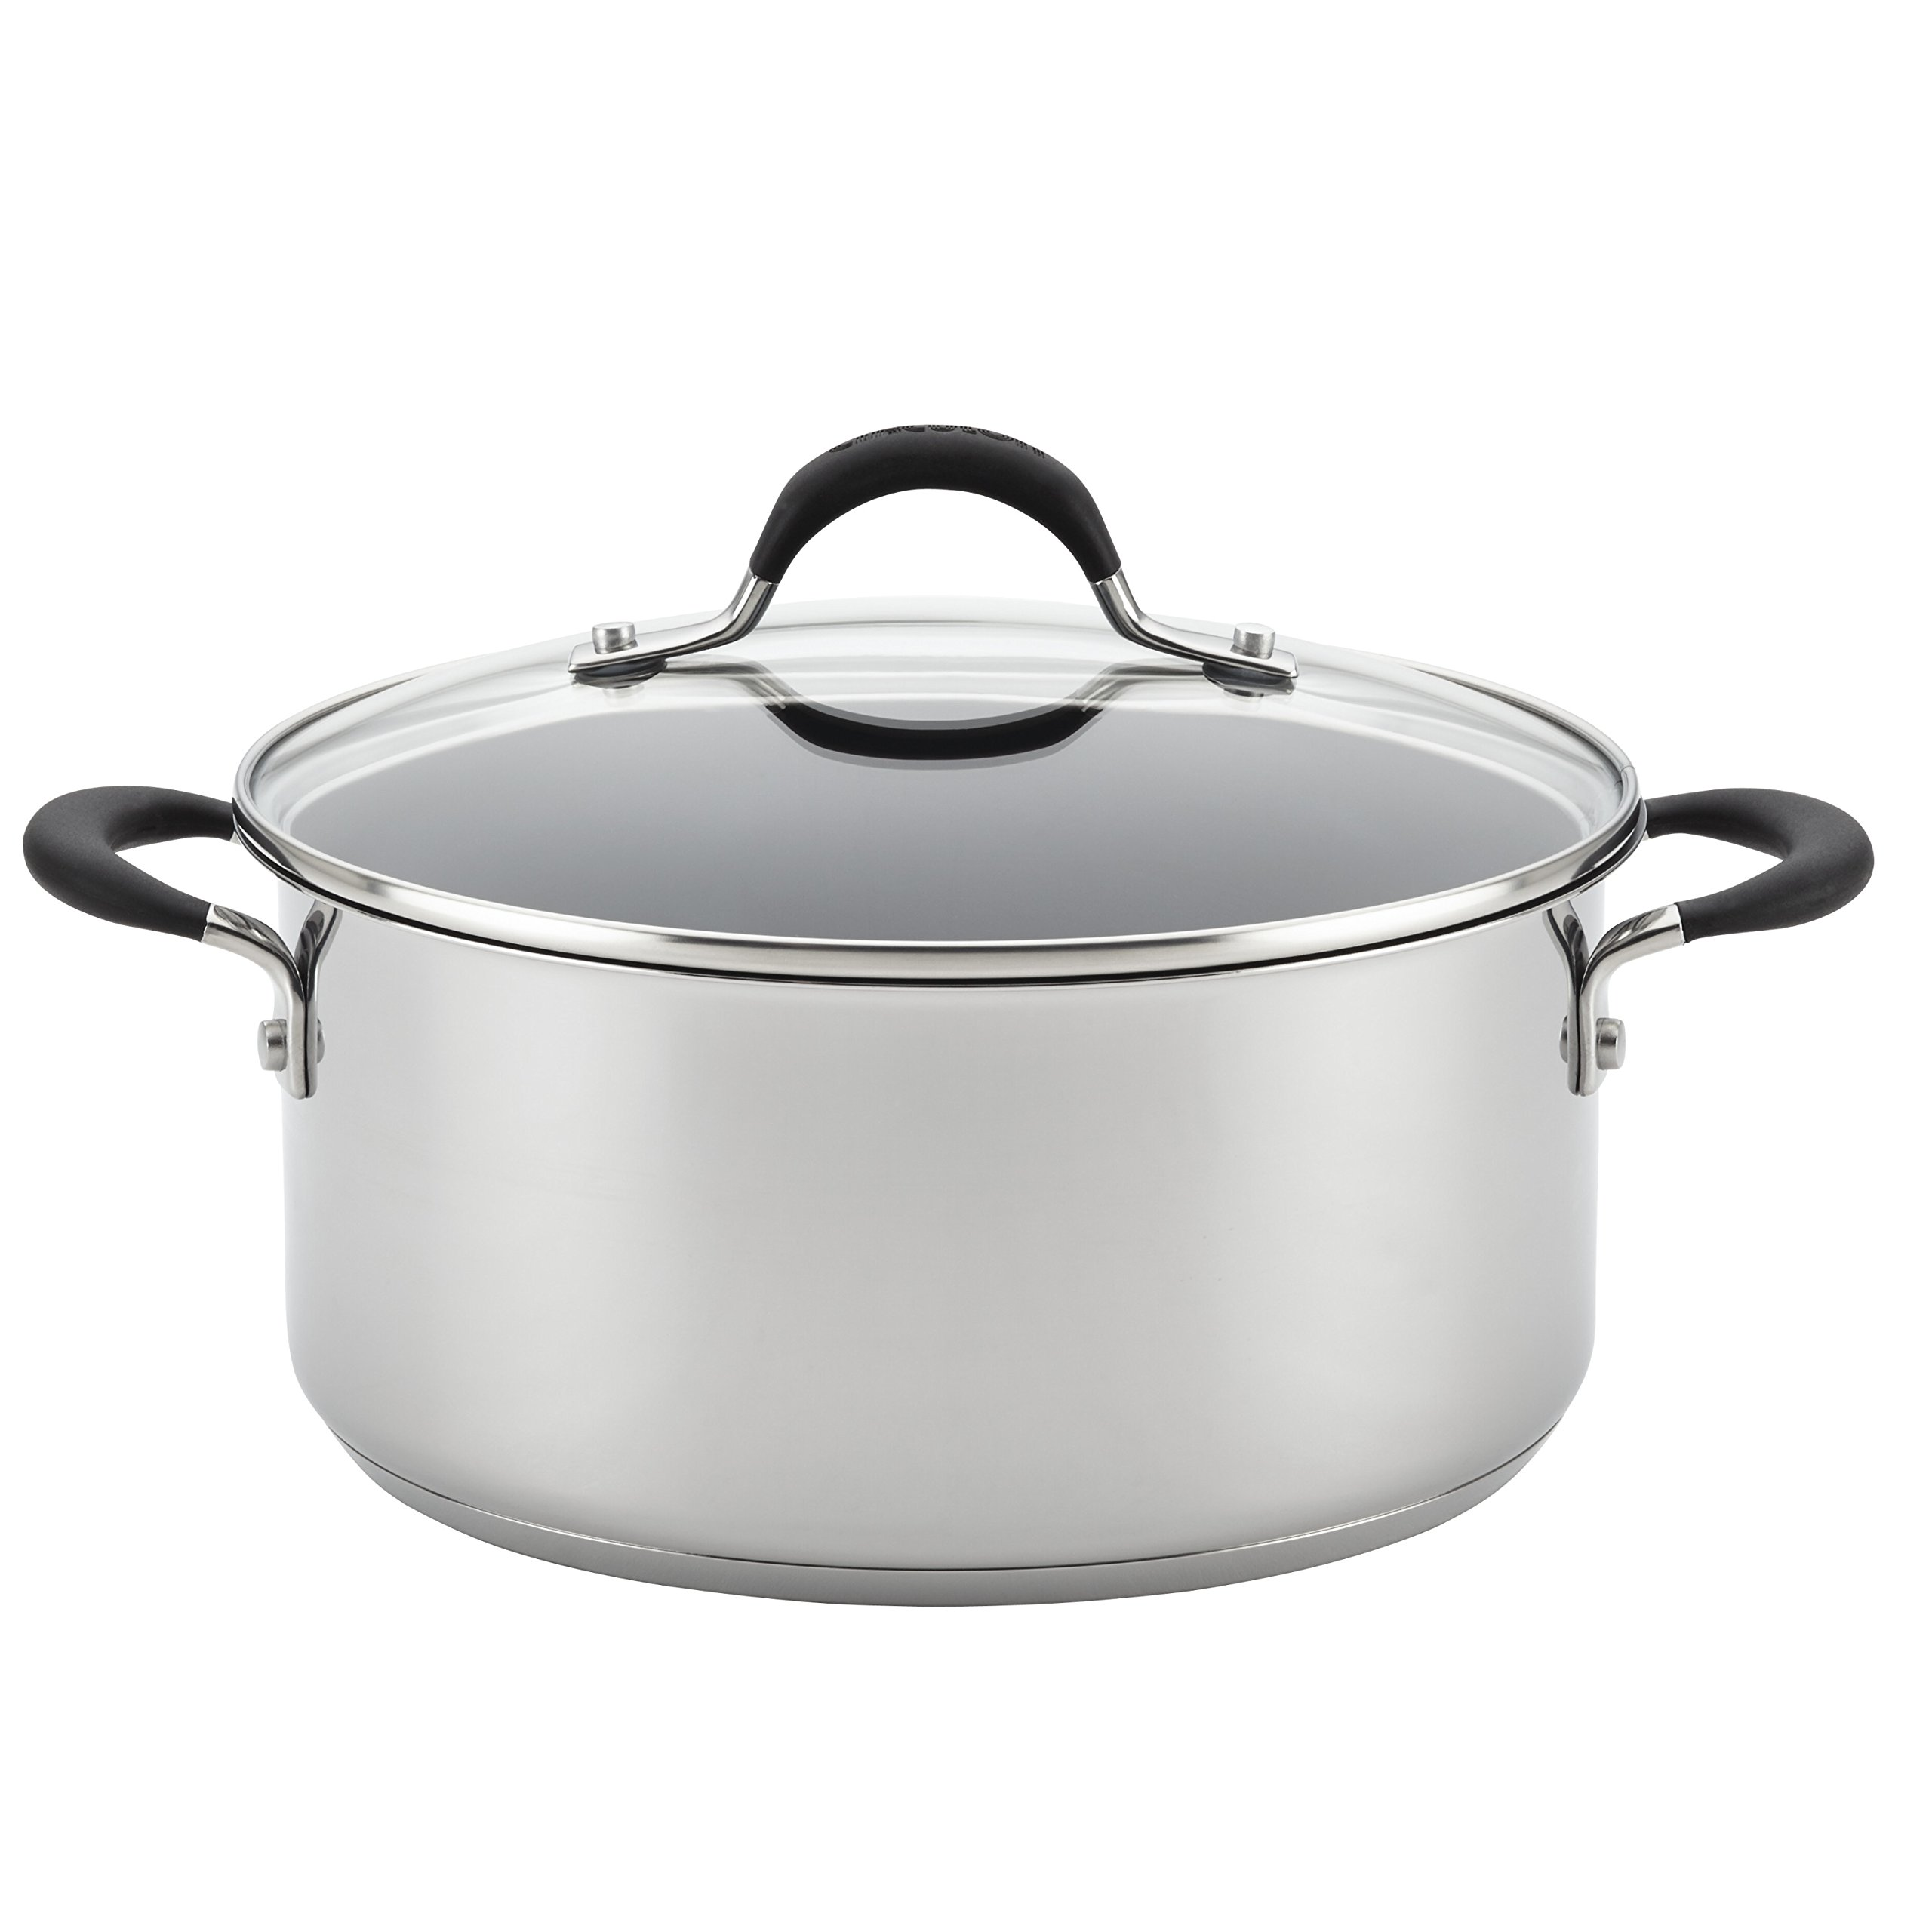 Circulon Momentum Stainless Steel Nonstick 5-Quart Covered Dutch Oven